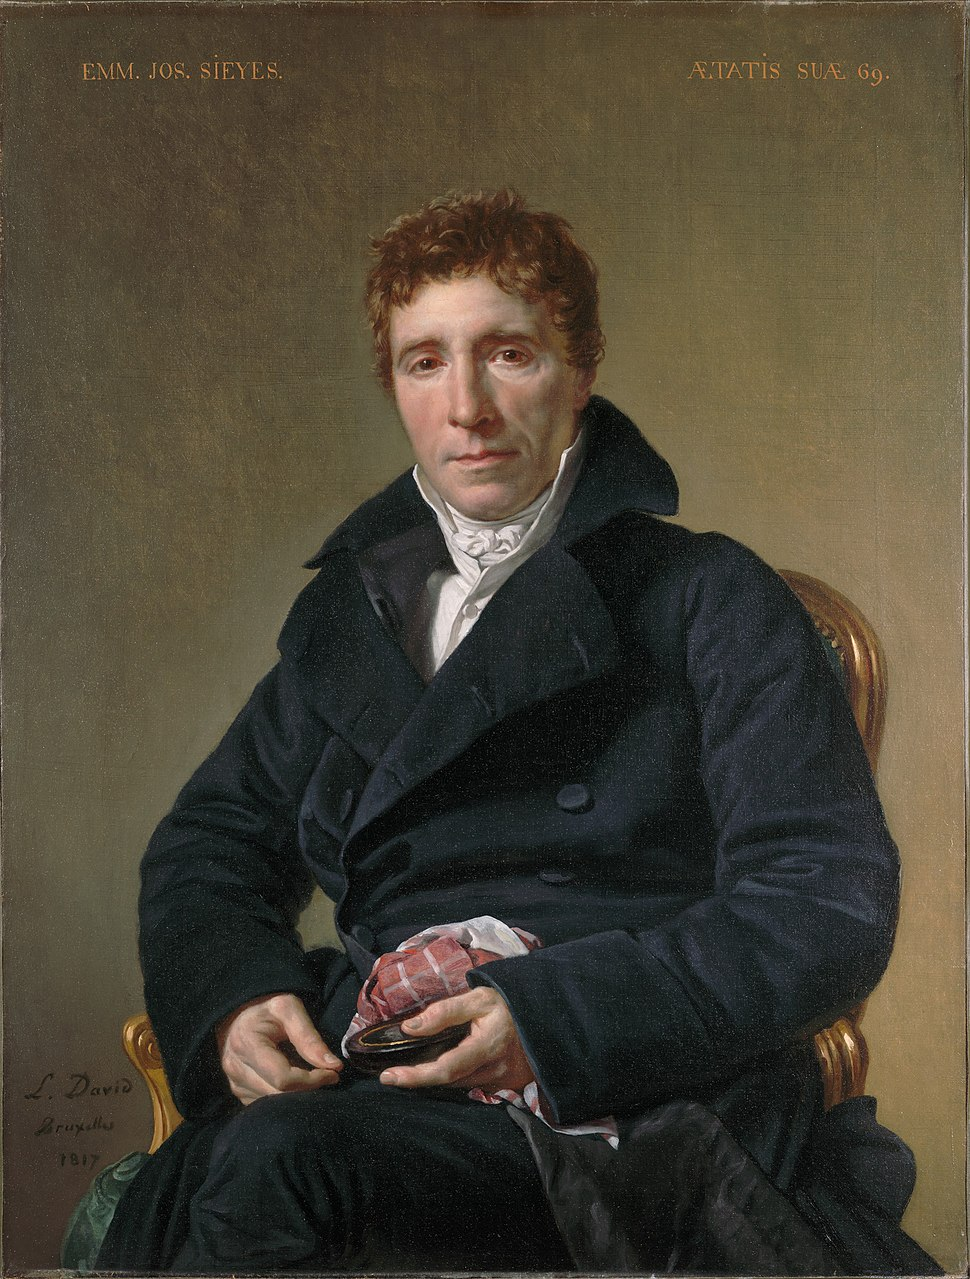 Emmanuel Joseph Sieyès, by Jacques Louis David